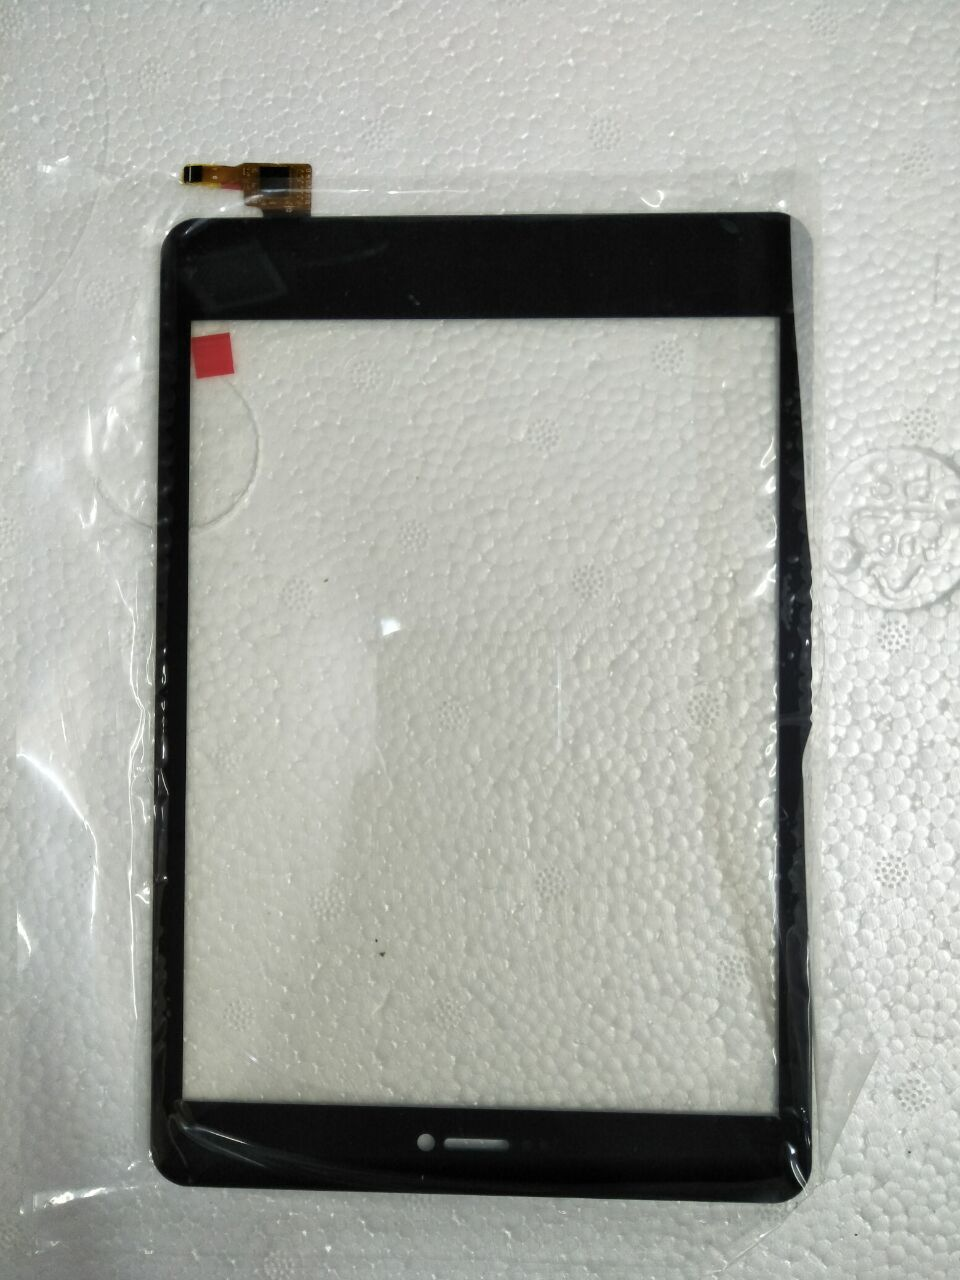 New For 7.85 inch Tablet 078135-01a-v1 Touch Screen Touch Panel digitizer Glass Sensor Replacement Free Shipping new for 10 1 inch qumo sirius 1001 tablet capacitive touch screen panel digitizer glass sensor replacement free shipping